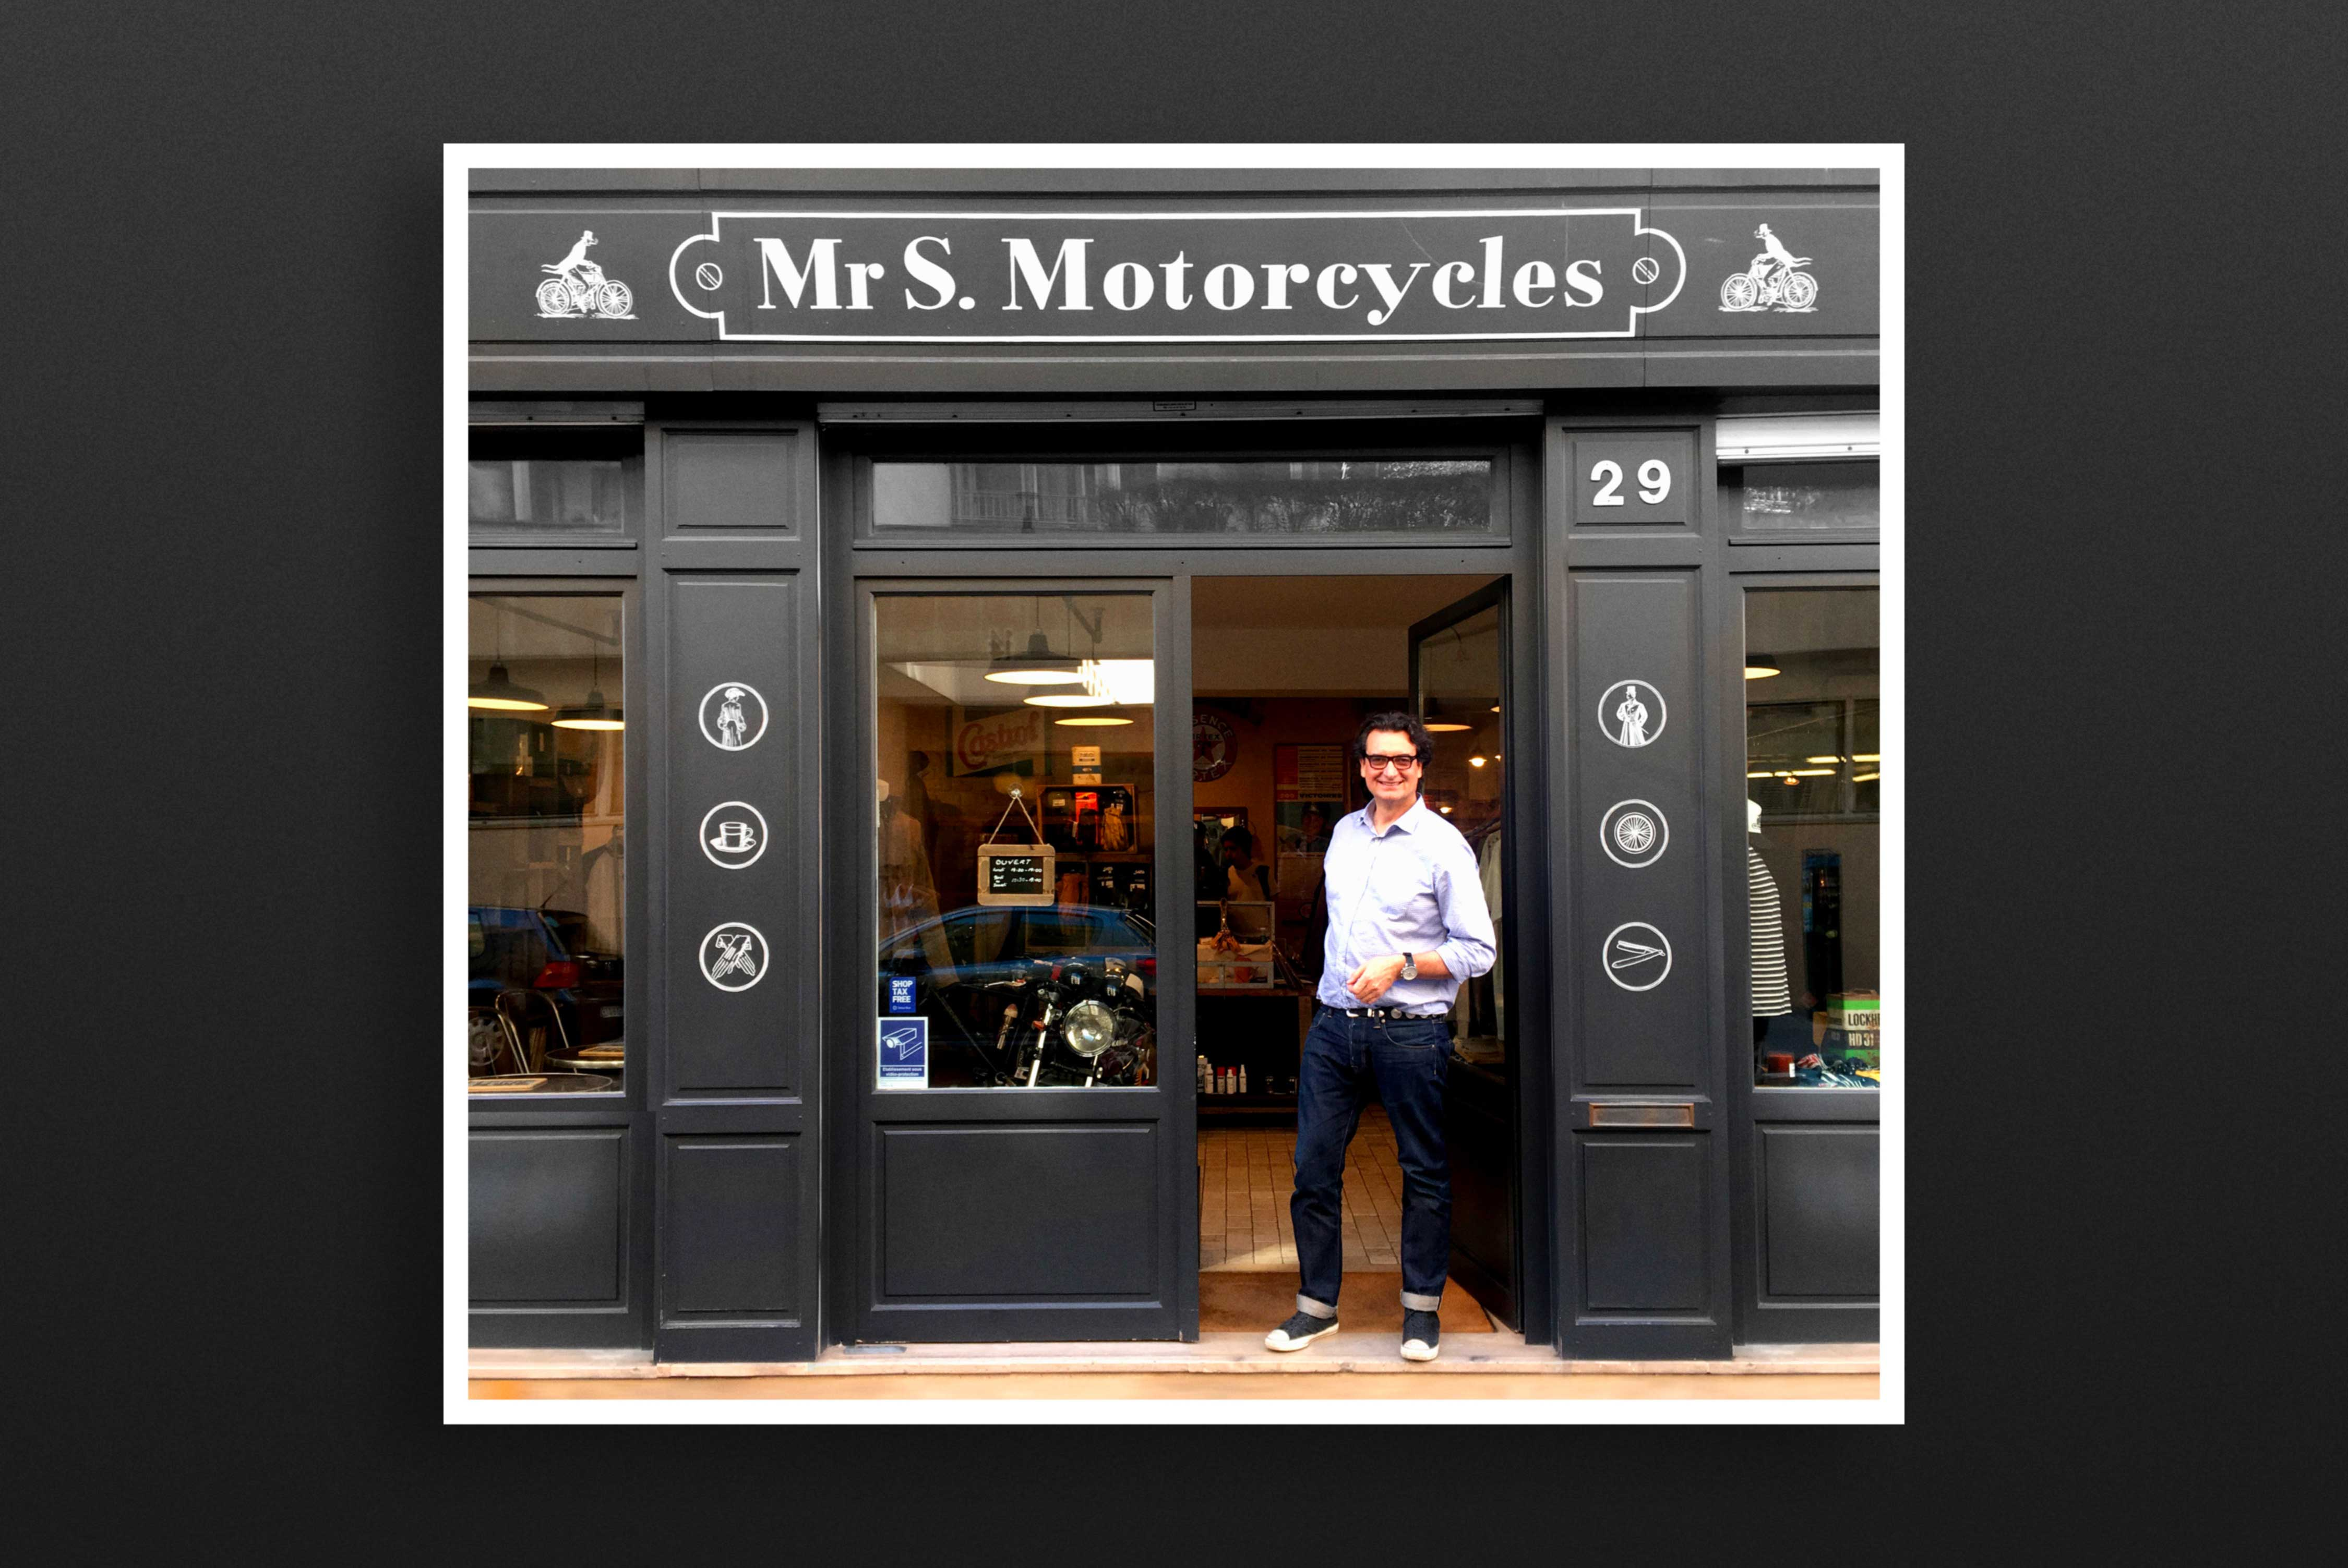 Mr S. Motorcycles